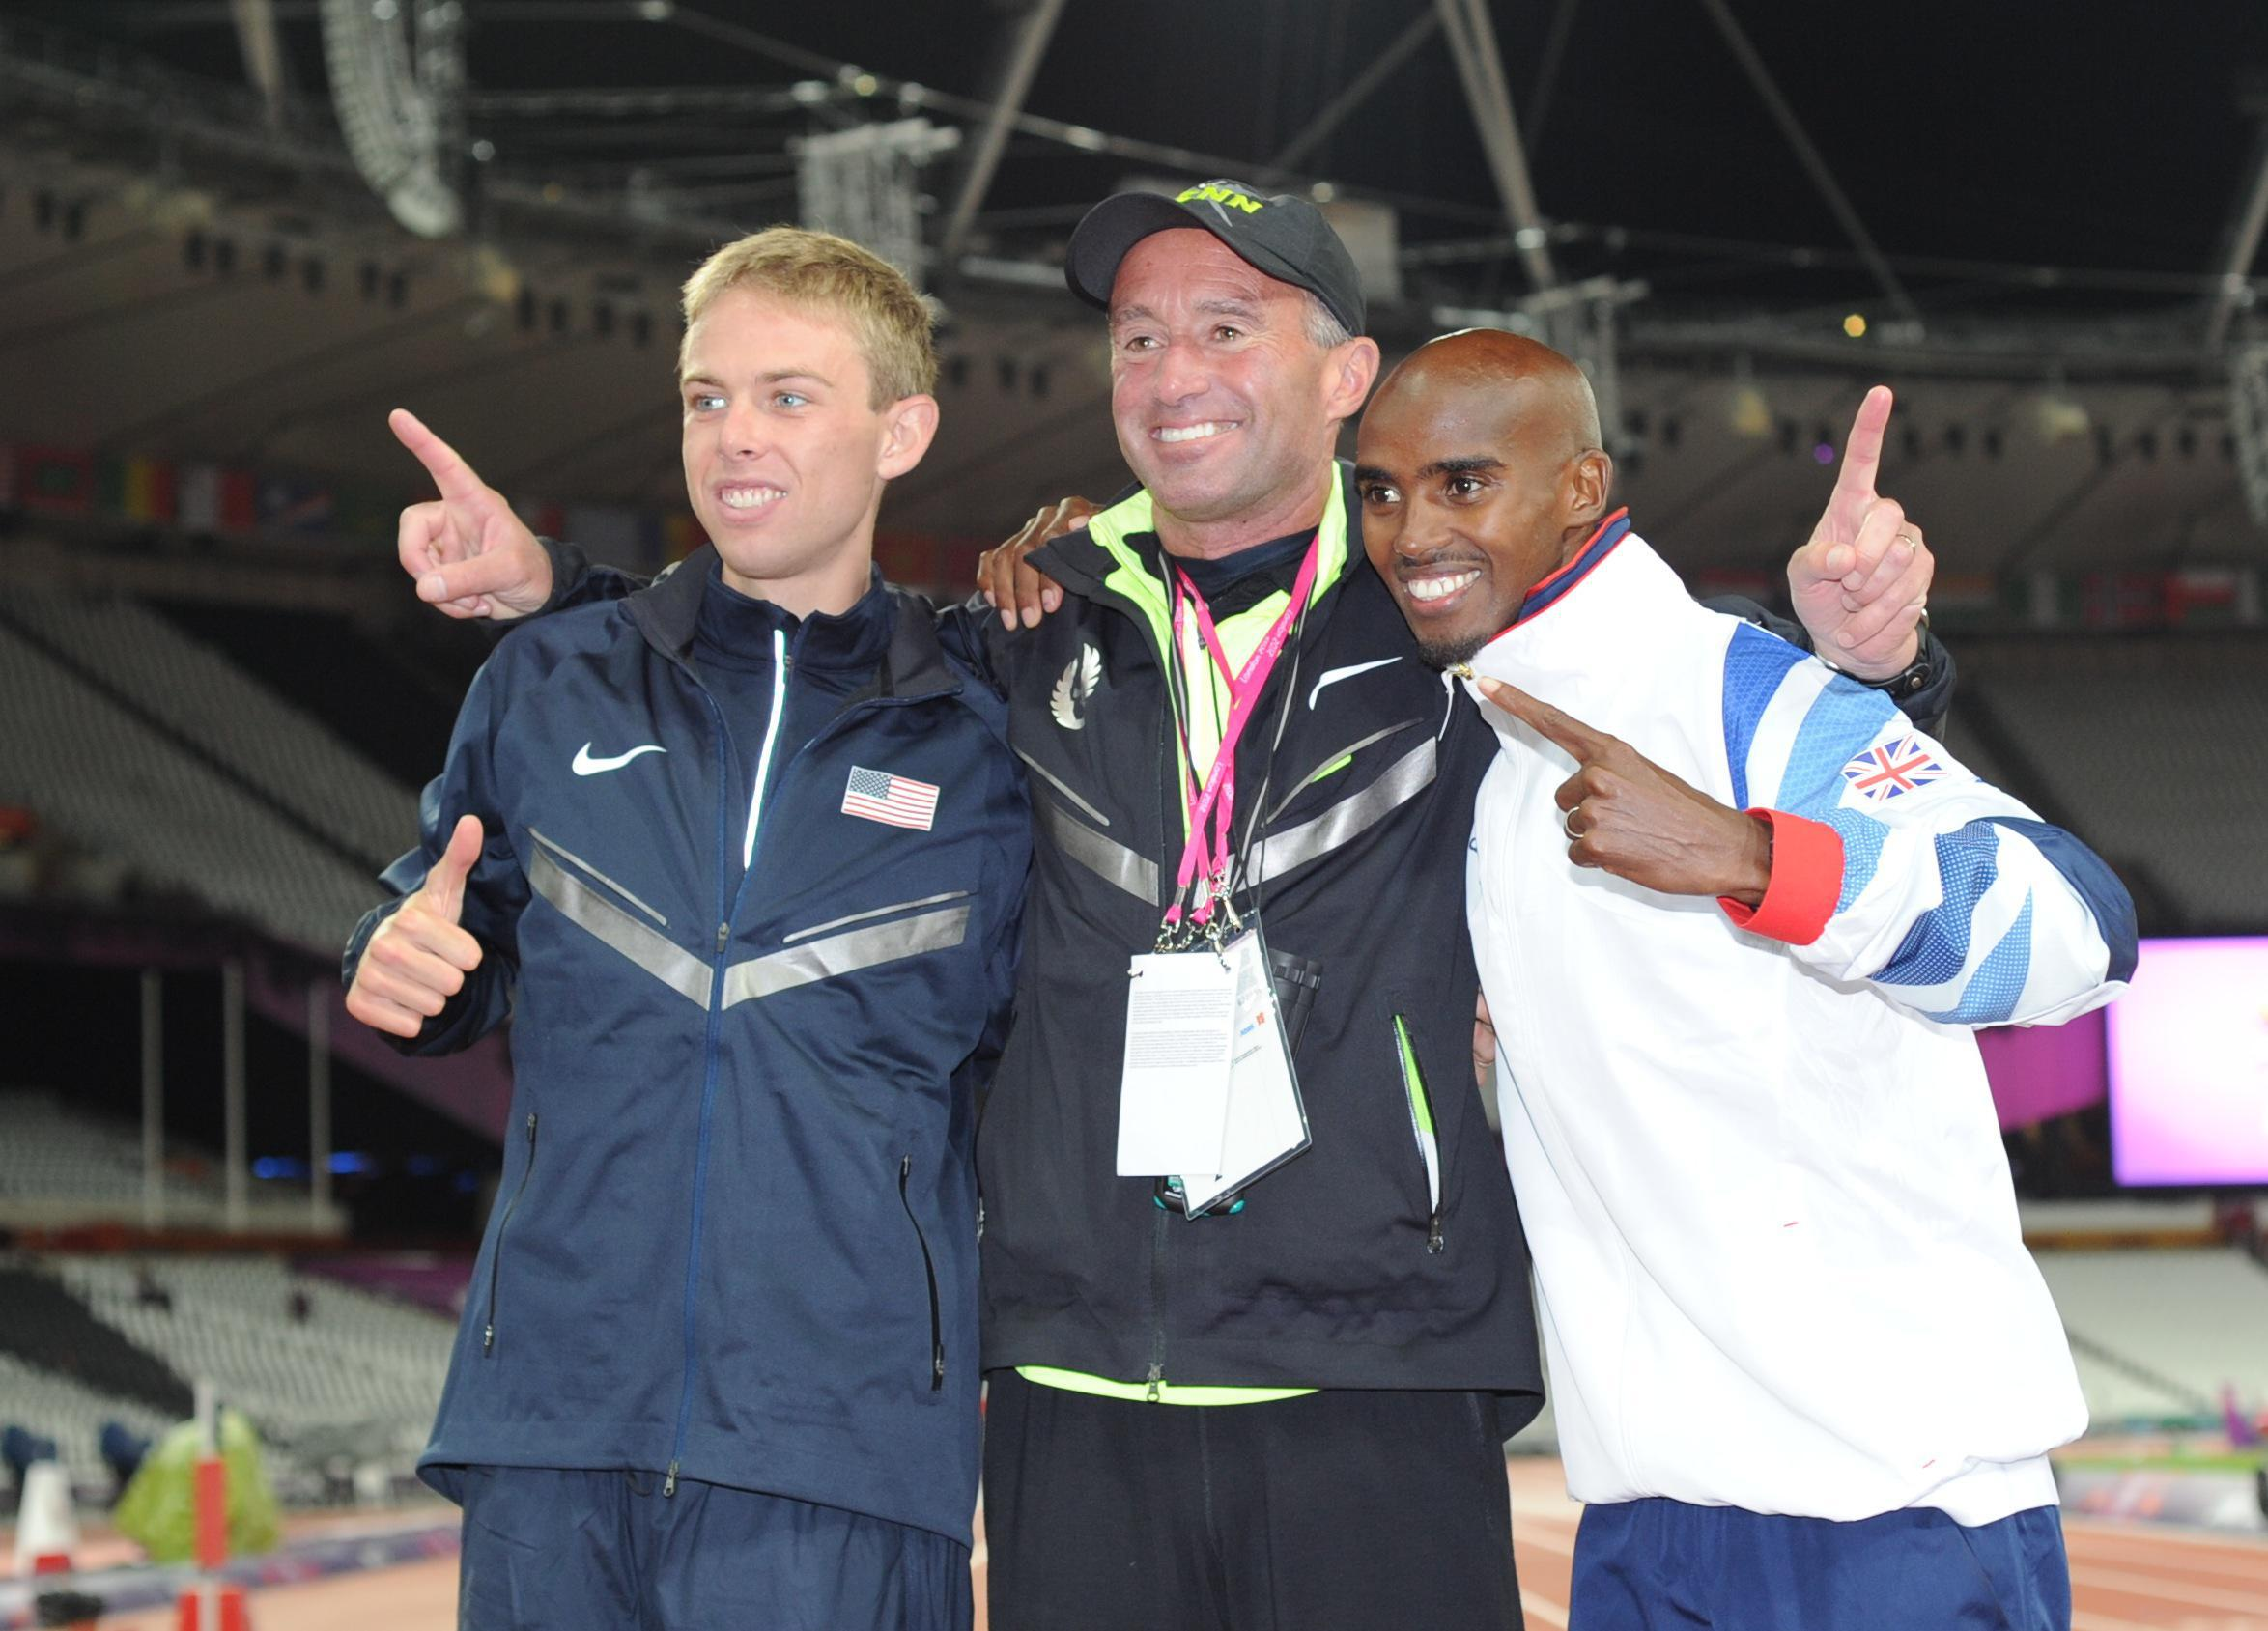 Mo's association with coach Alberto Salazar has been criticised